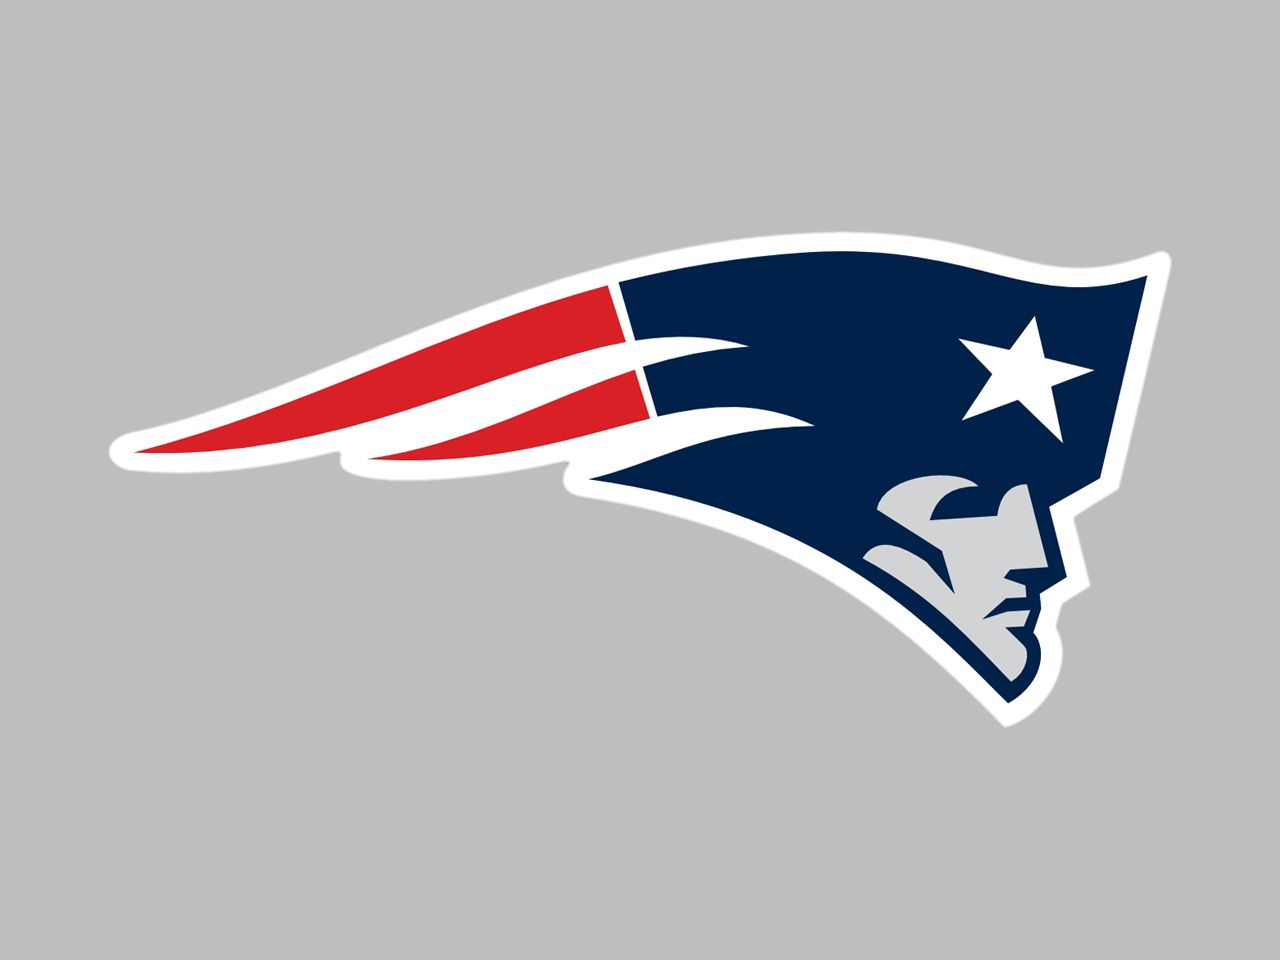 Albino S Favorite Football Team Is The Patriots New England Patriots Wallpaper New England Patriots New England Patriots Football